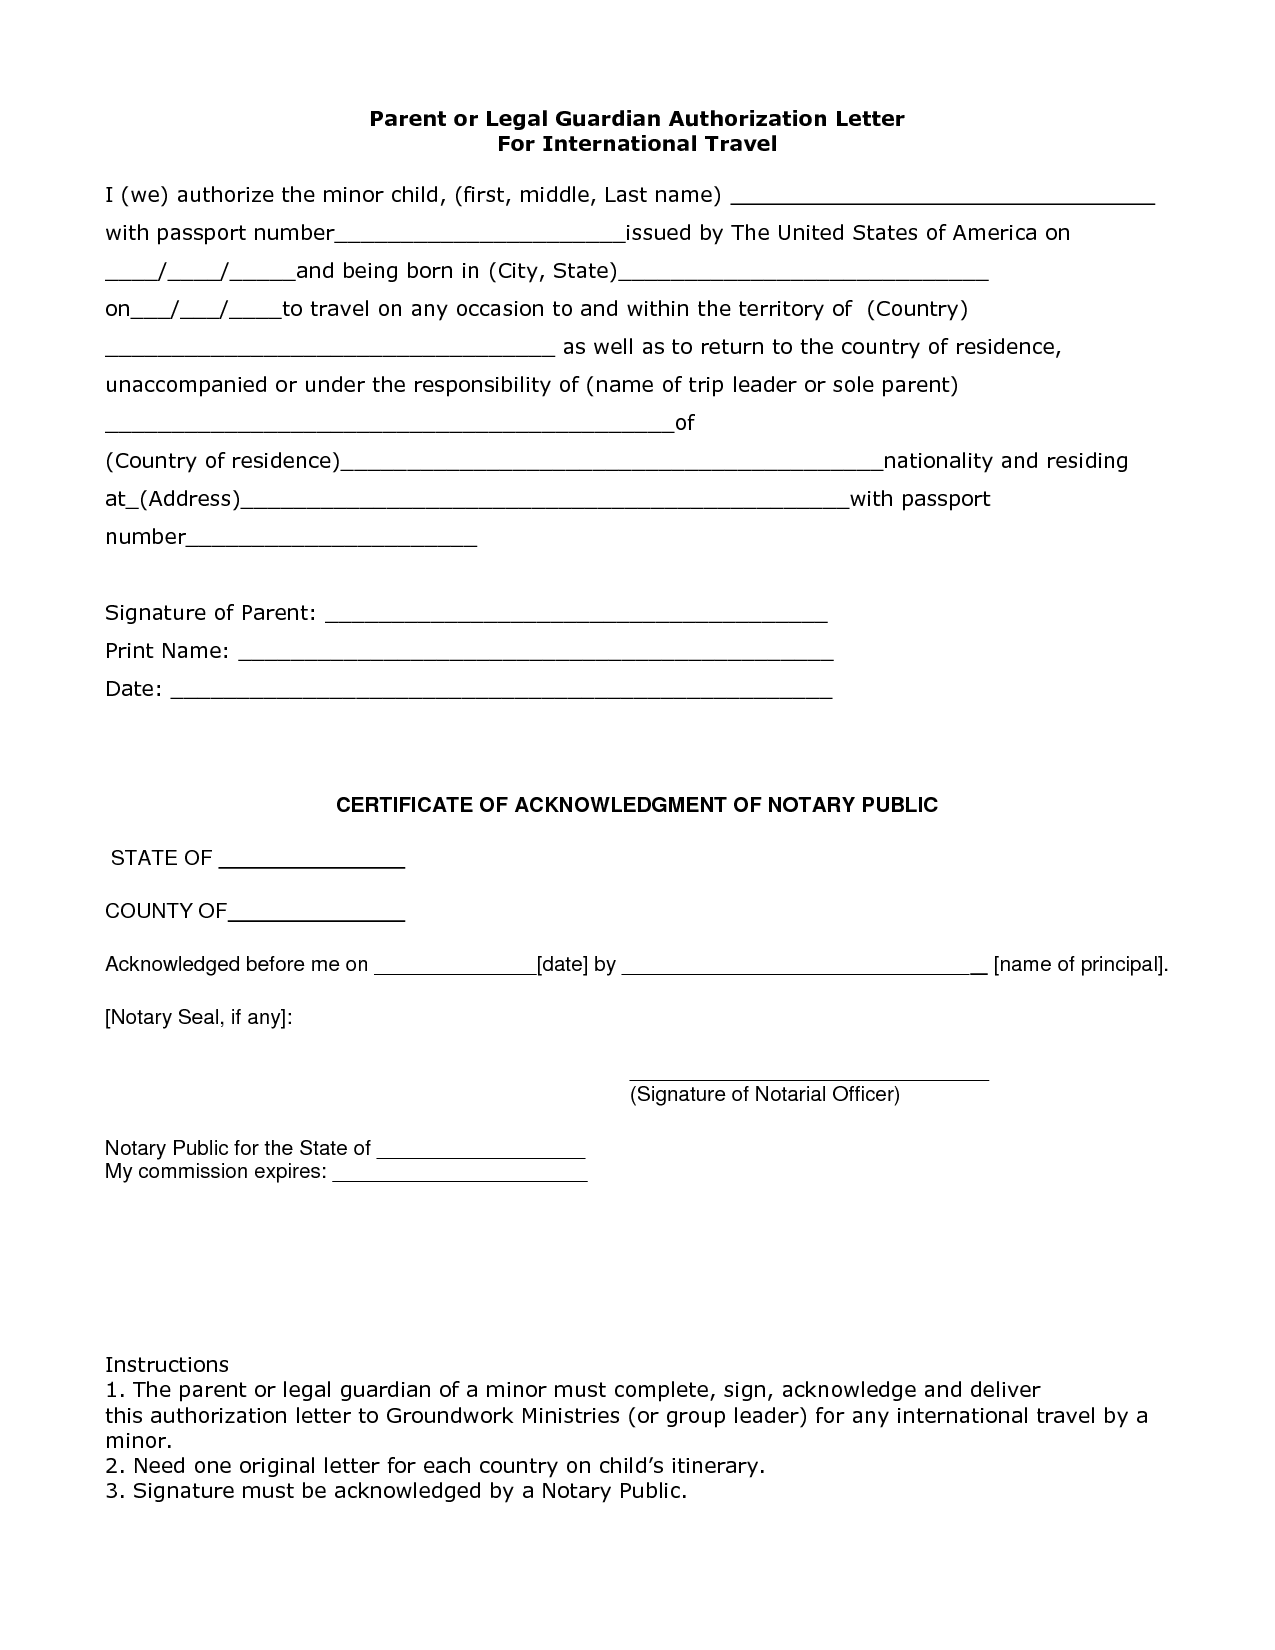 Affidavit Of Facts Template Enchanting Letter Example Legal Guardianship Sample And Forms  Personal .